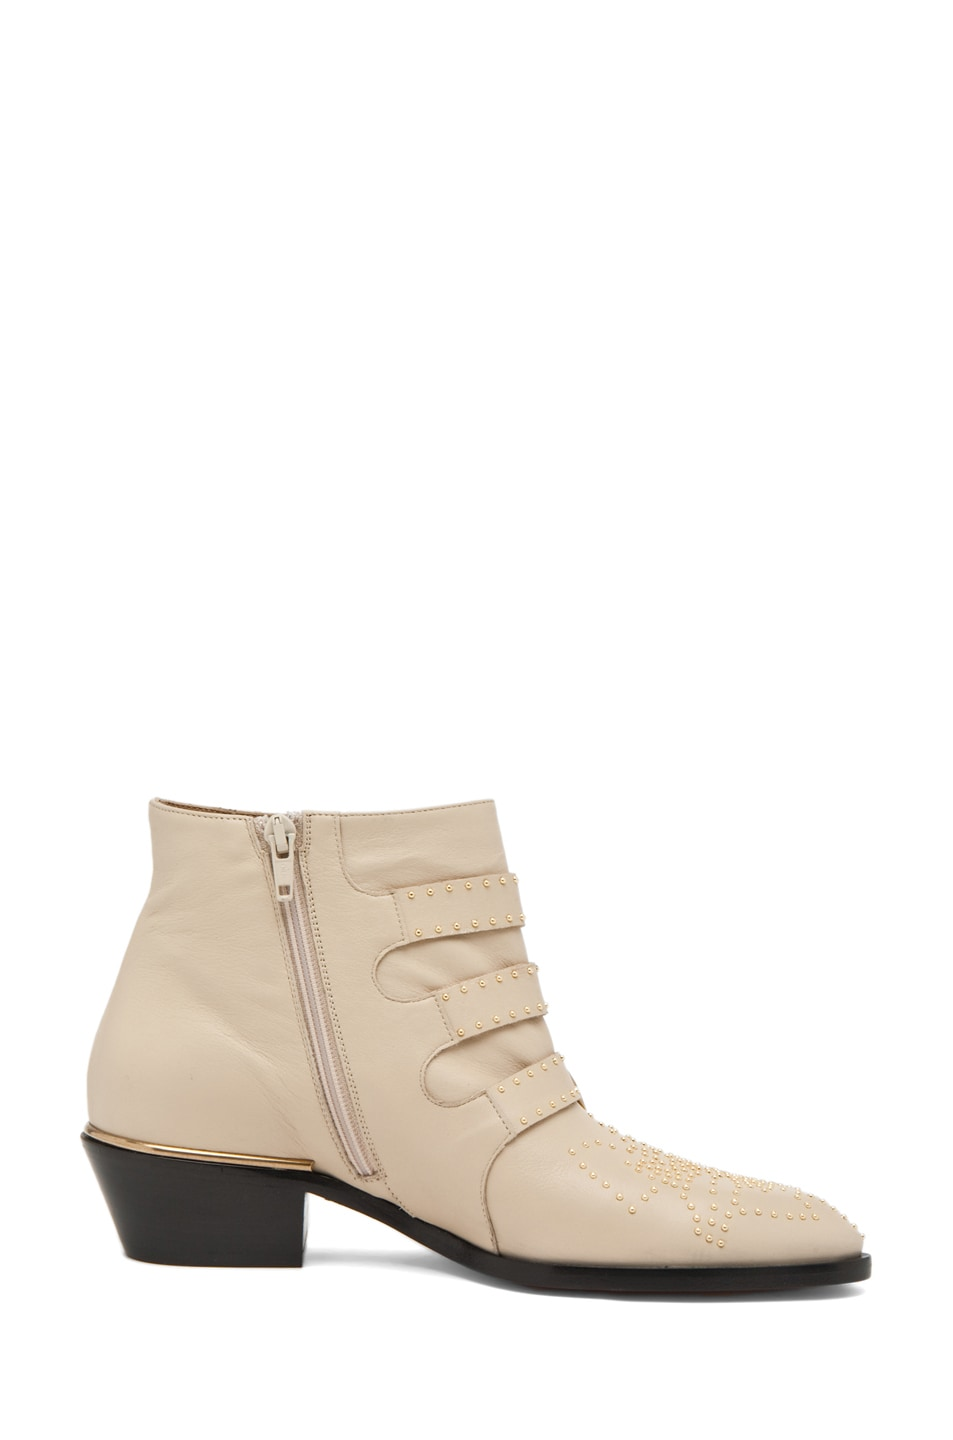 Image 5 of Chloe Susanna Leather Studded Bootie in Cream